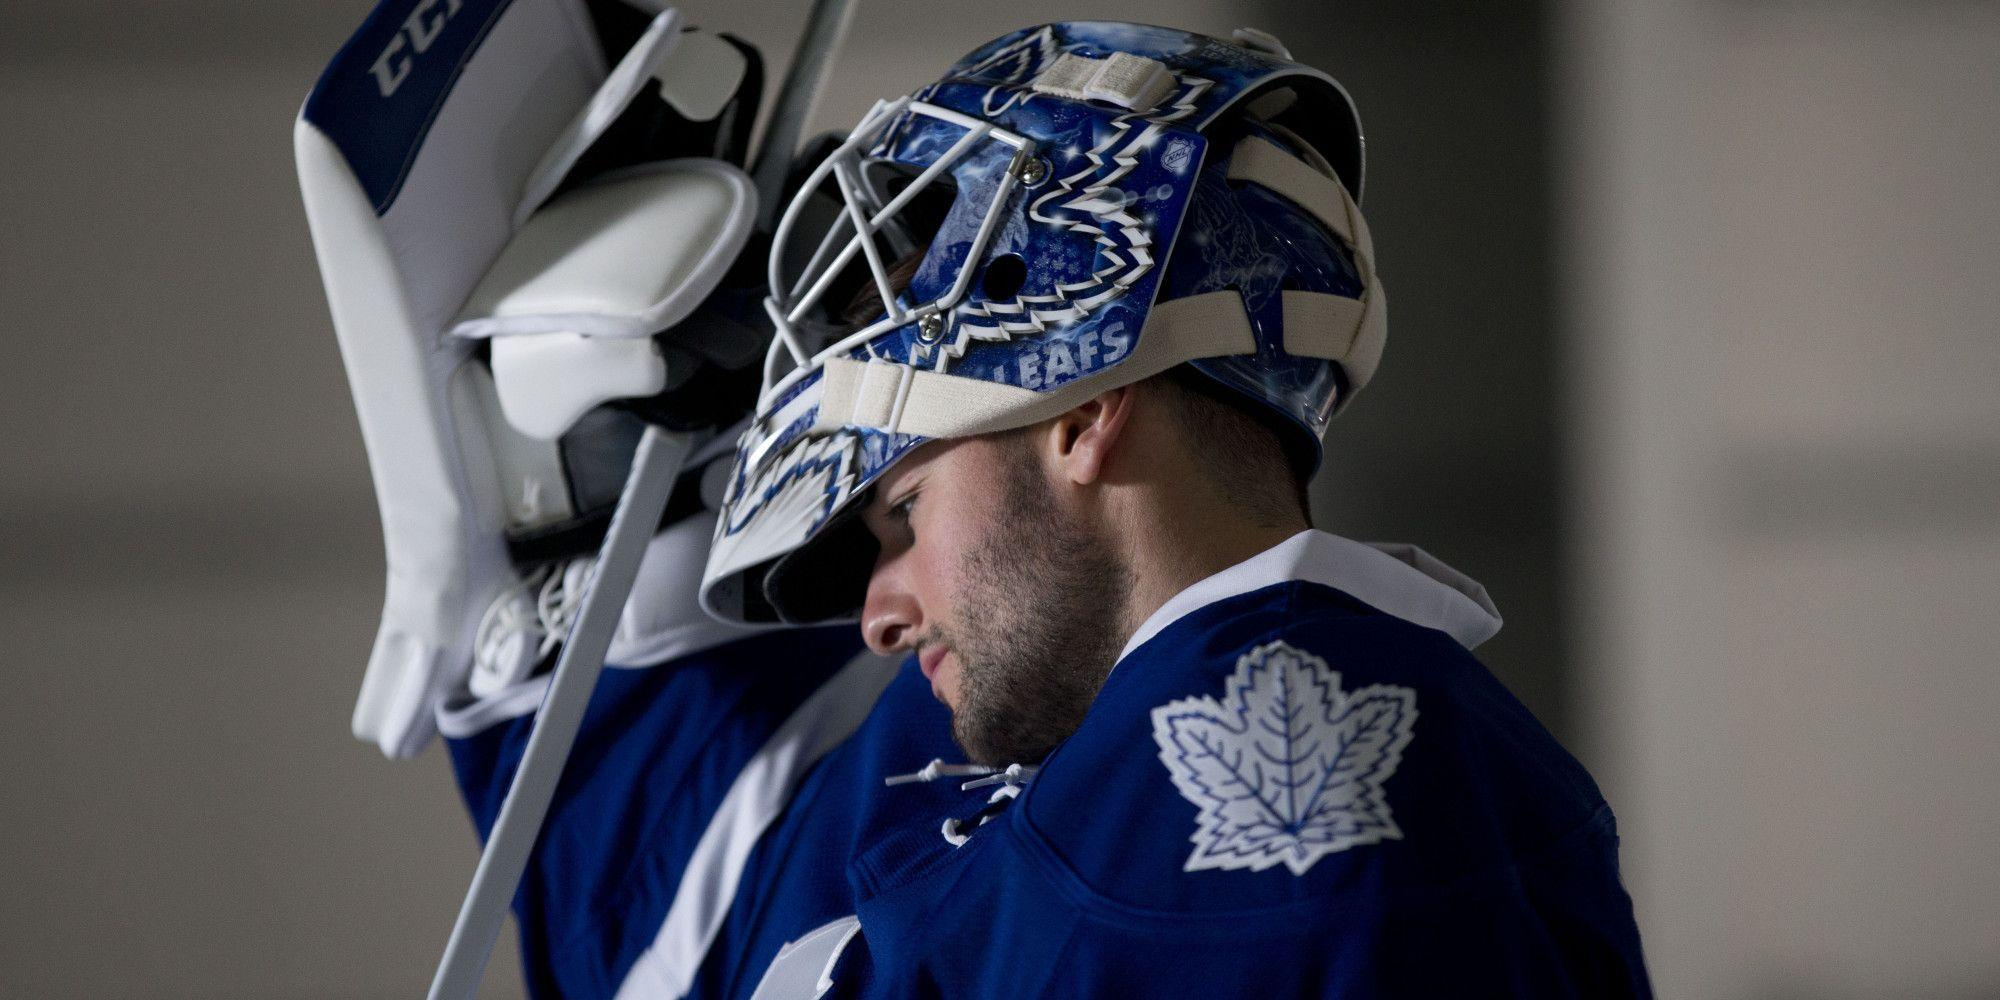 Toronto Maple Leafs Worst Sports Franchise In North America: ESPN